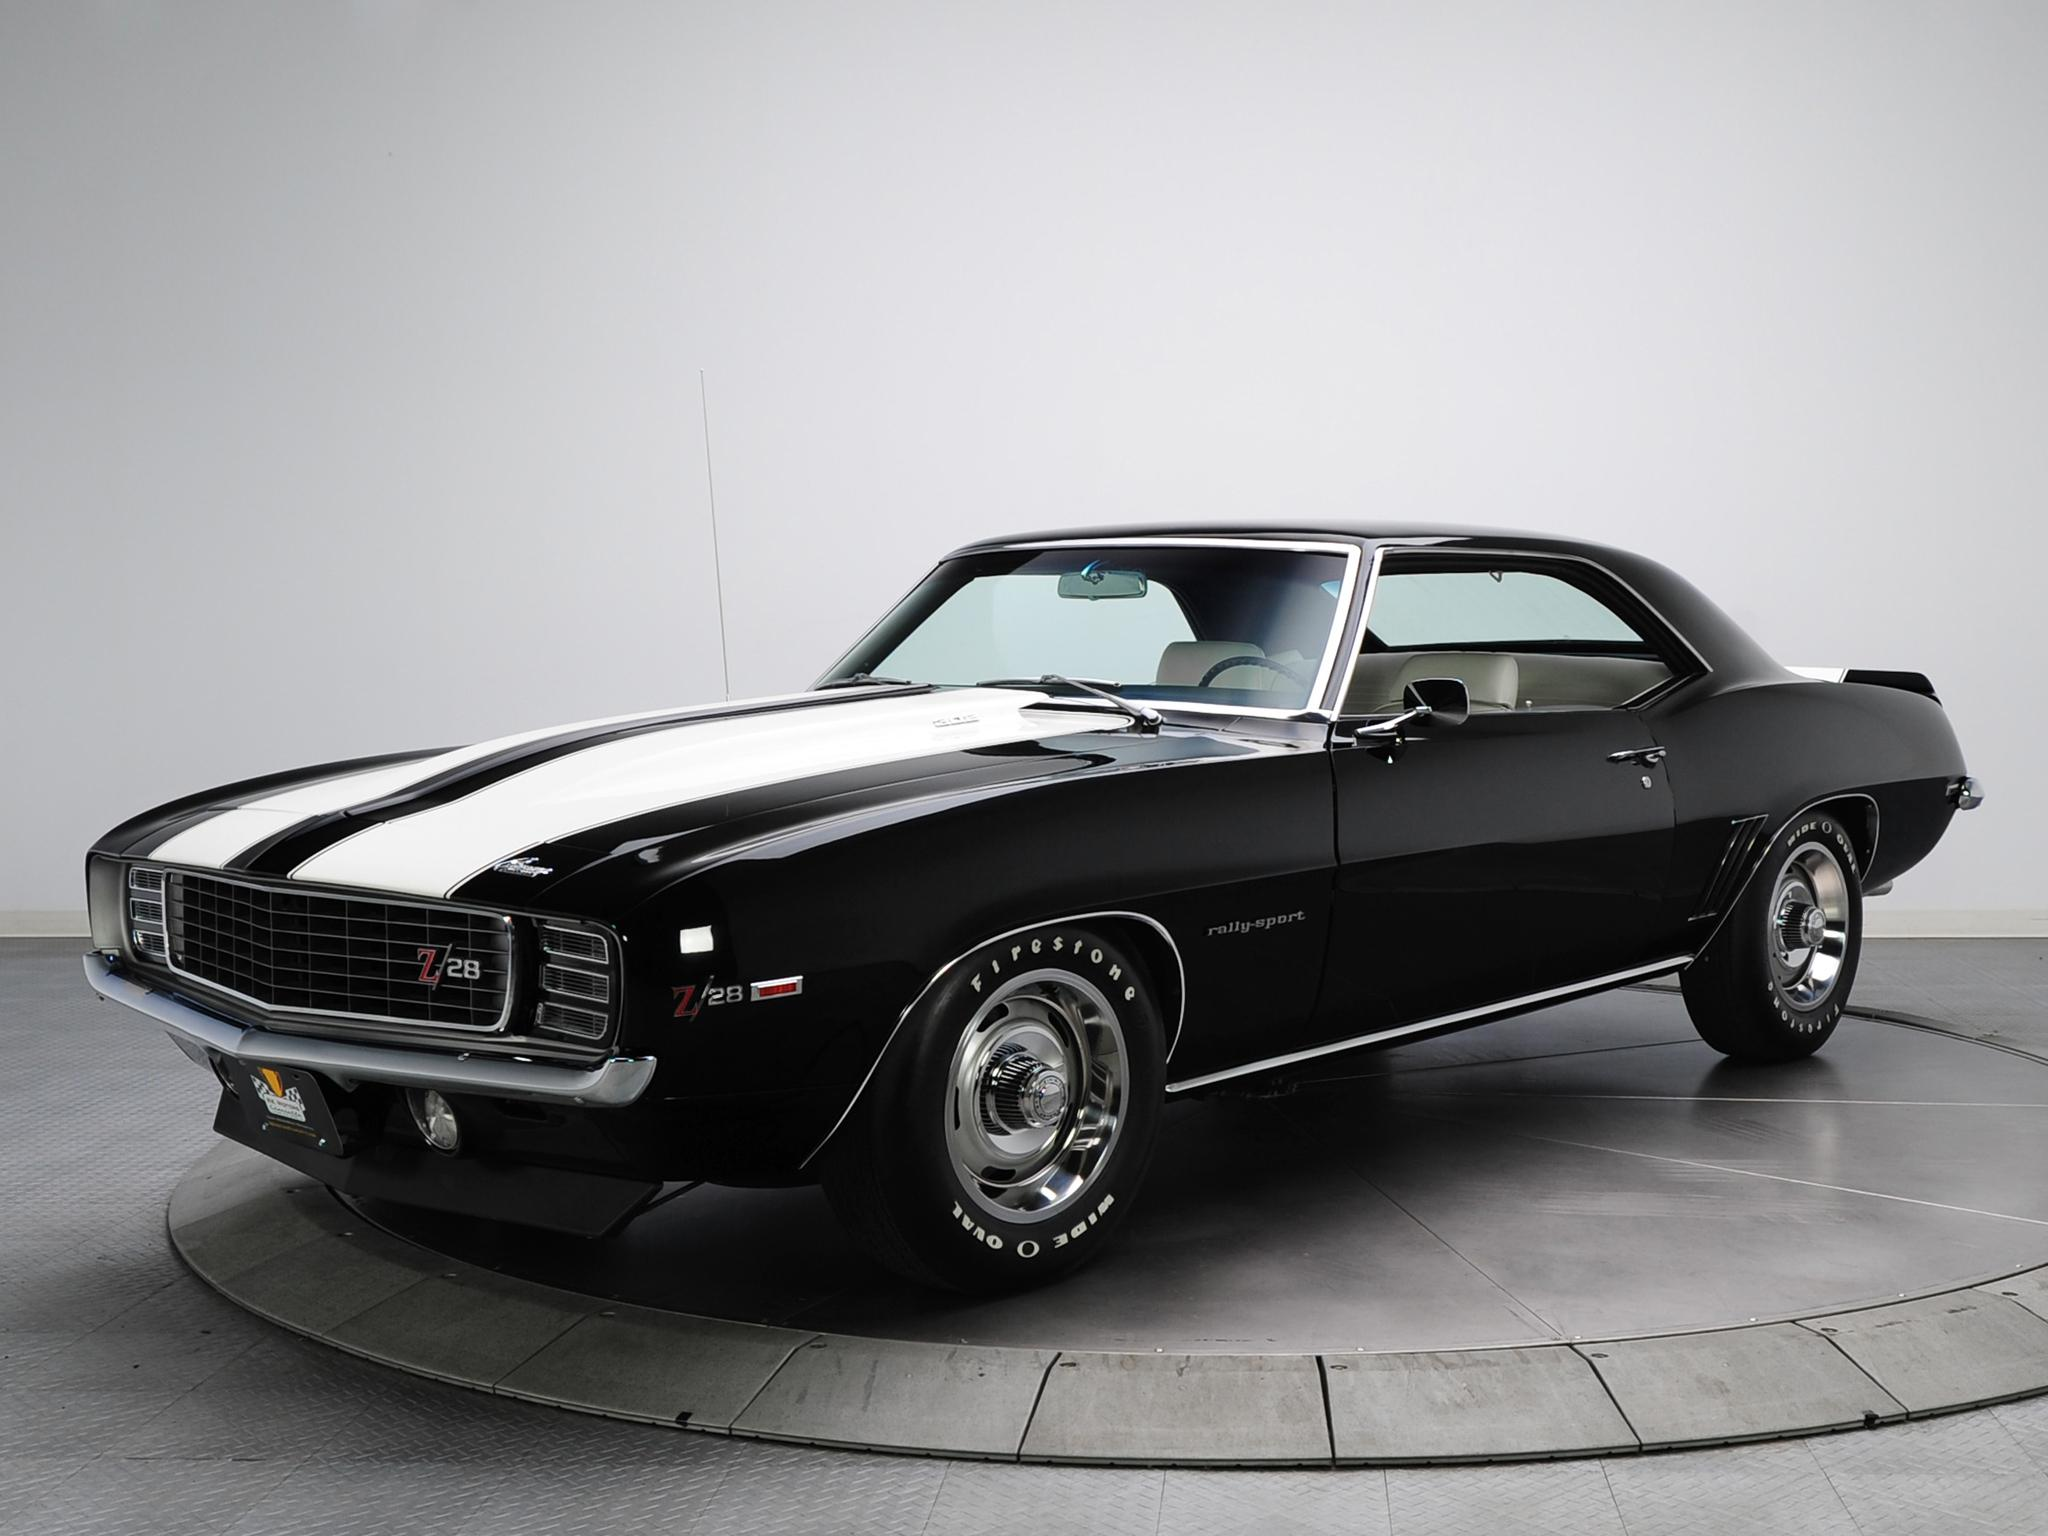 Black Chevrolet Camaro Wallpapers